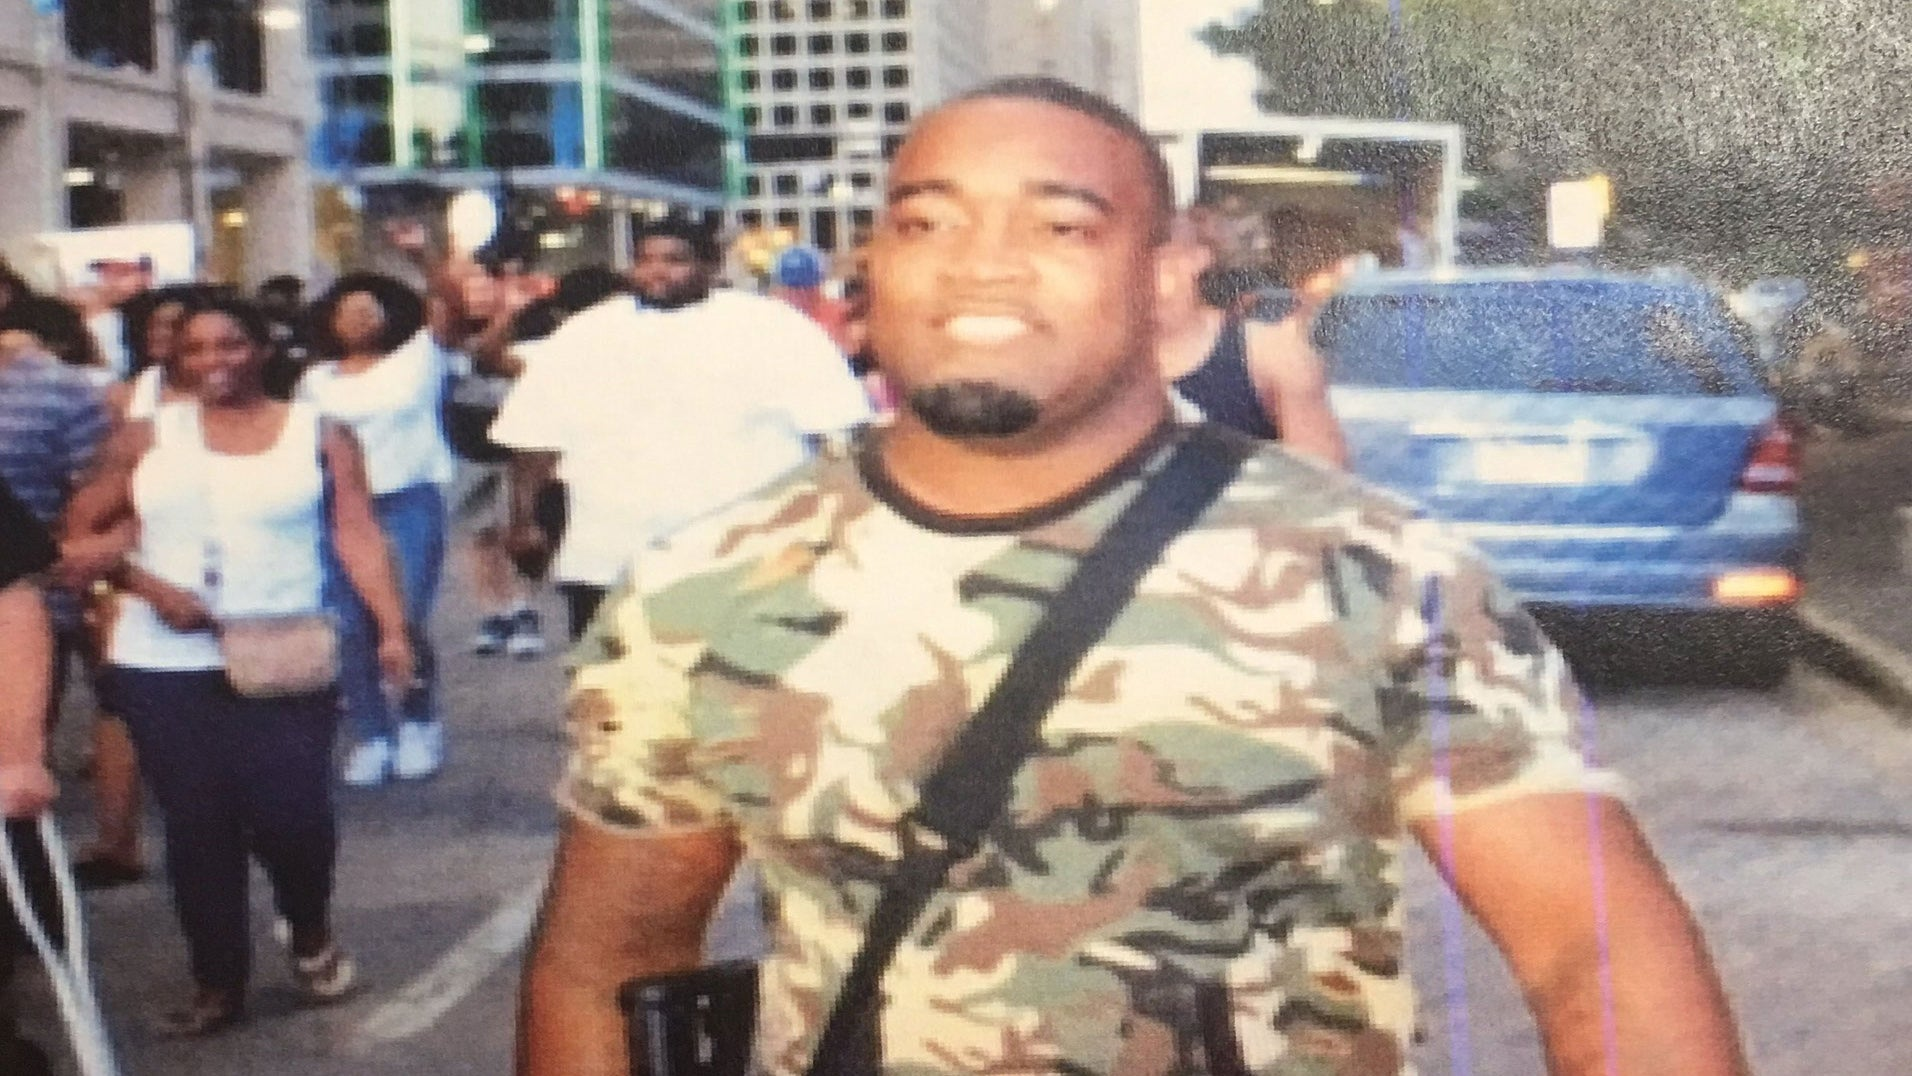 Mark Hughes Incorrectly Identified as a Suspect in Dallas Shooting Speaks Out